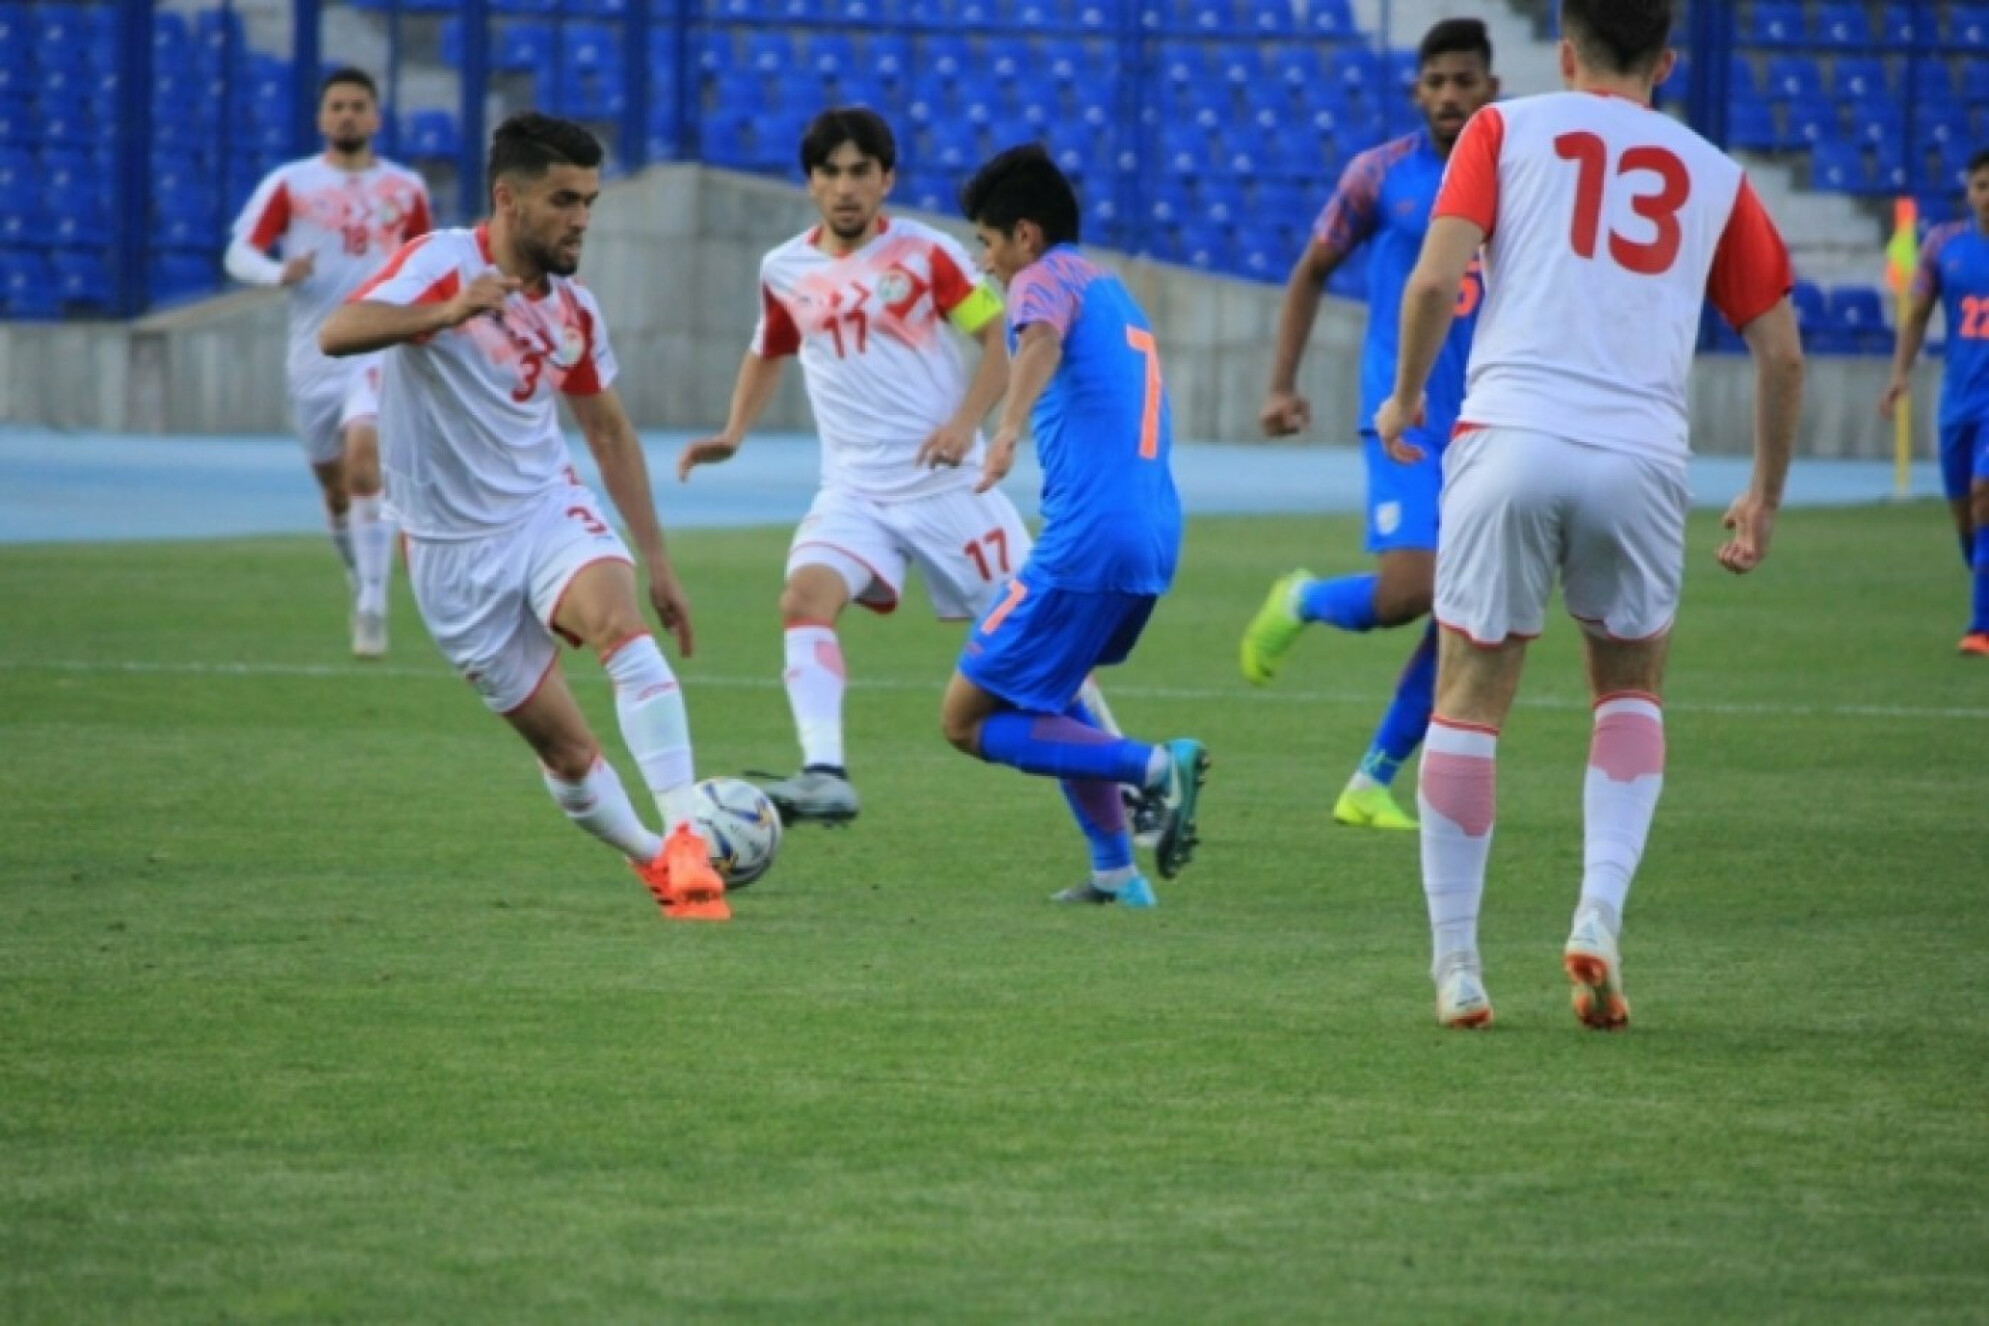 AFC U-23 Qualifiers: India lose to Tajikistan to get knocked out of race.